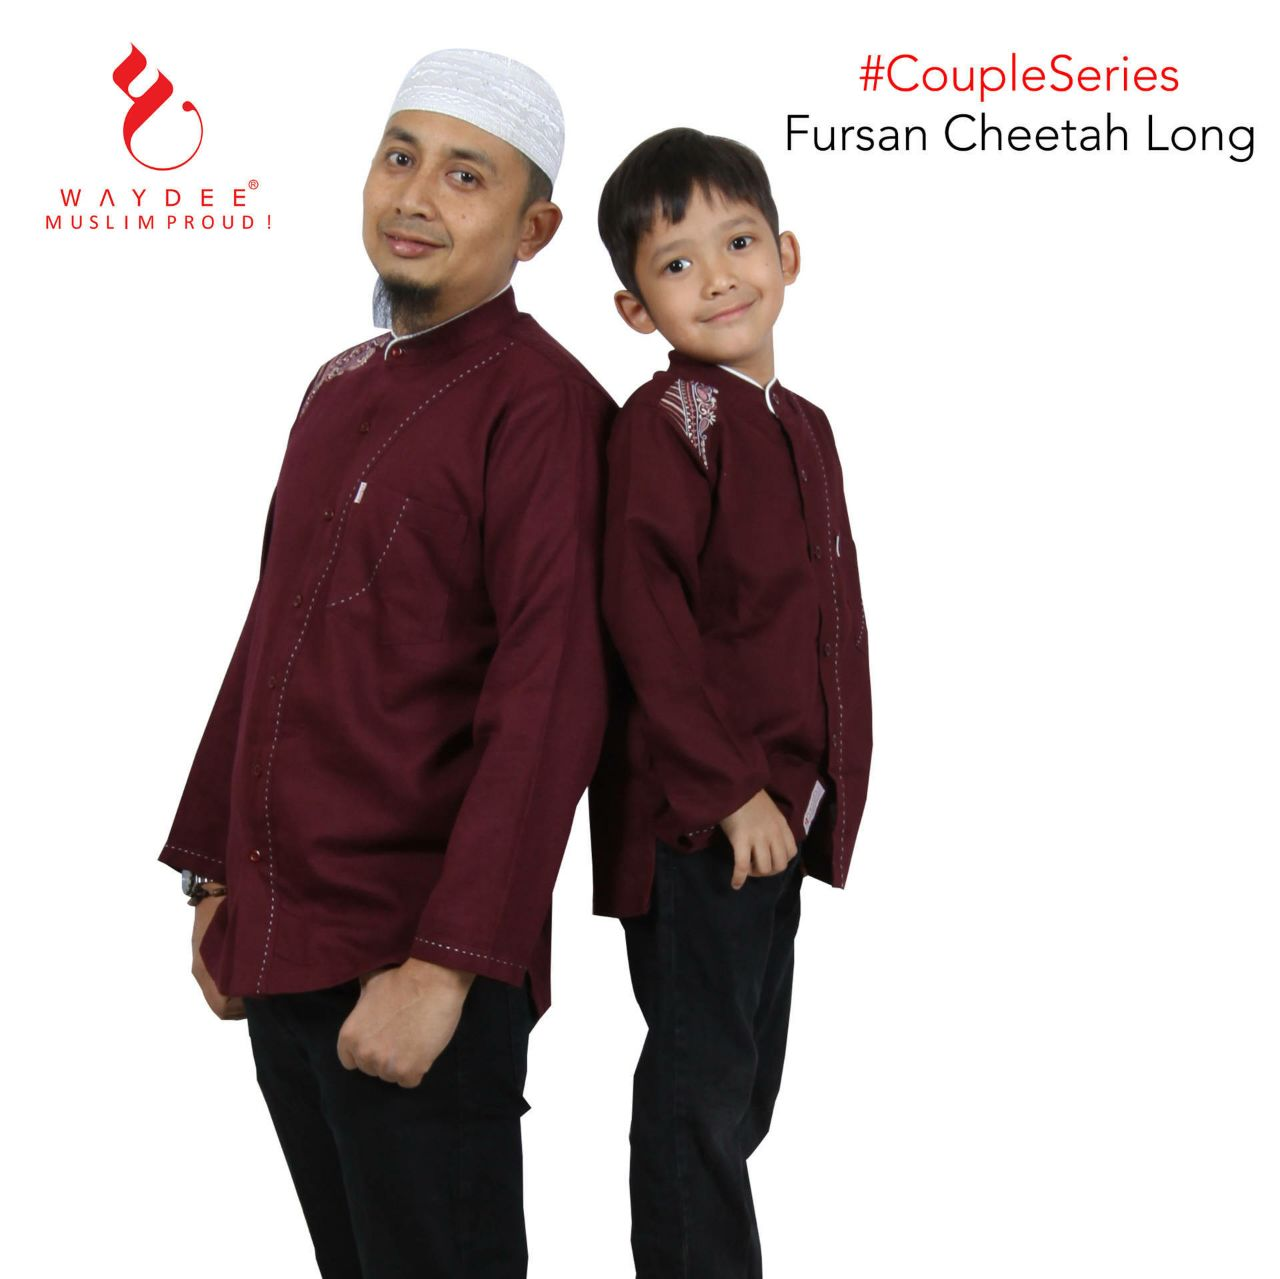 BAJU KOKO FURSAN CHEETAH LONG COUPLE